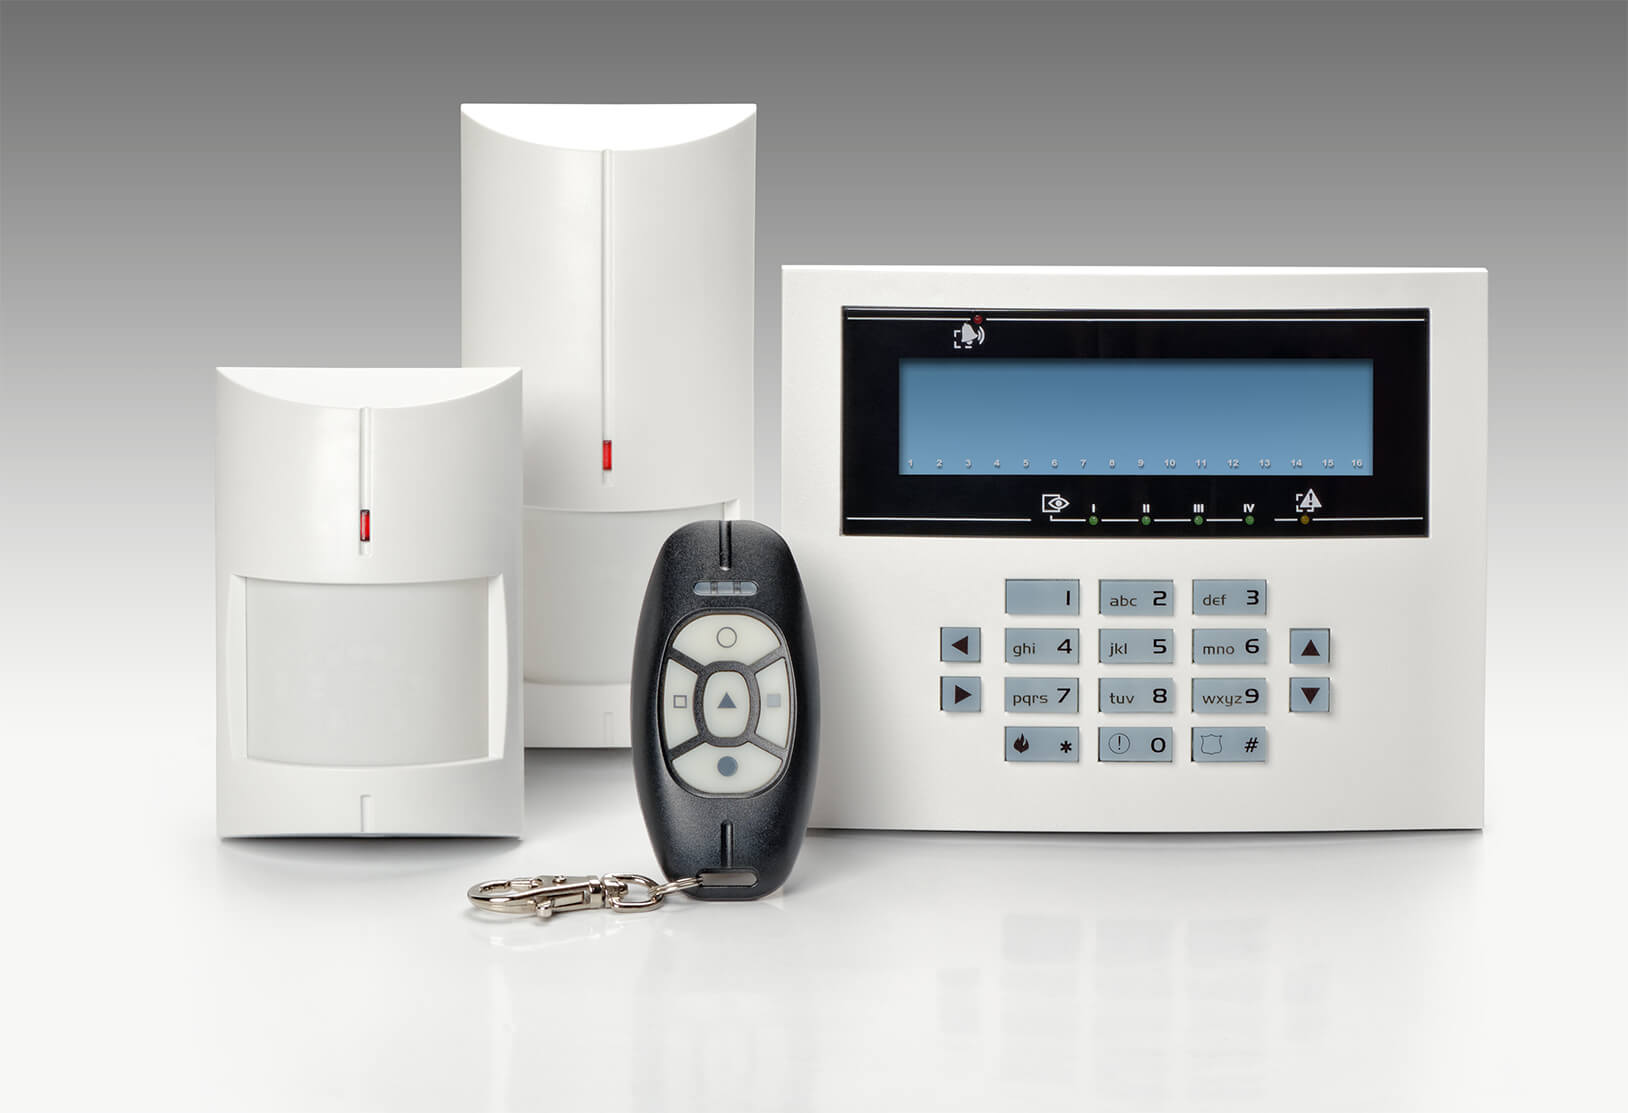 Business & Residential NACOSS Approved Burglar Alarms In Poplar E15 - Local Poplar E15 security company.Call 02078872244 - Dedicated to Safety & Security. Companies, shops and homes ..